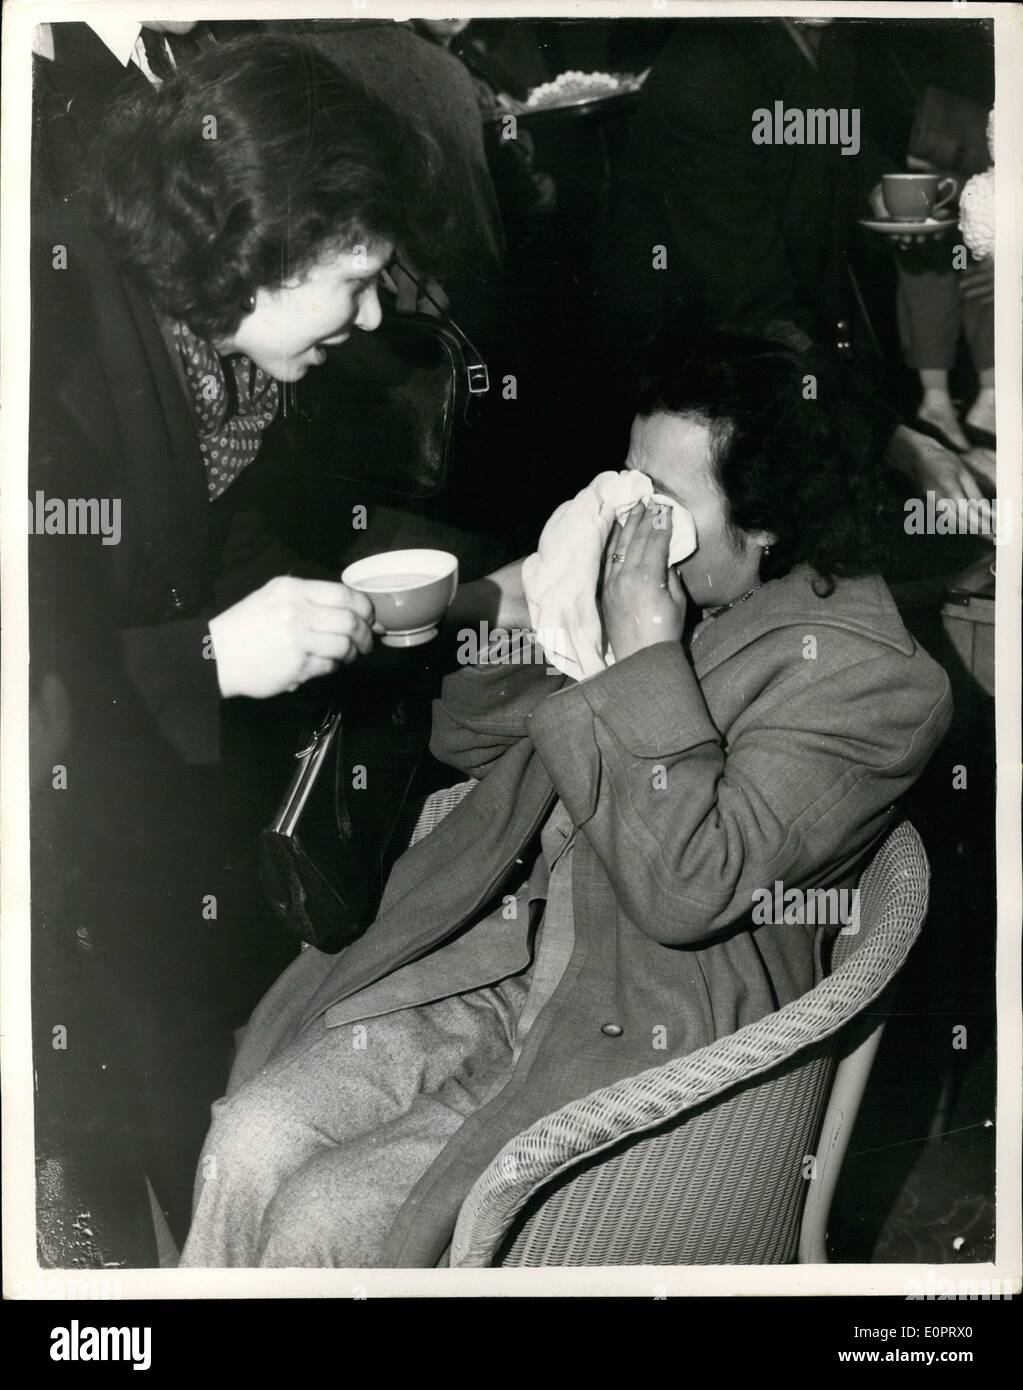 Nov. 11, 1956 - Hungarian refugees arrive in England. A tearful woman.: A party of 61 Hungarian Refugees arrived at Blackbushe Airport this morning. They are the advance guard of the 2,500 that this country is taking. Photo shows a tearful woman is offered a cup of tea on her arrival at Blackbushe airport this afternoon. - Stock Image